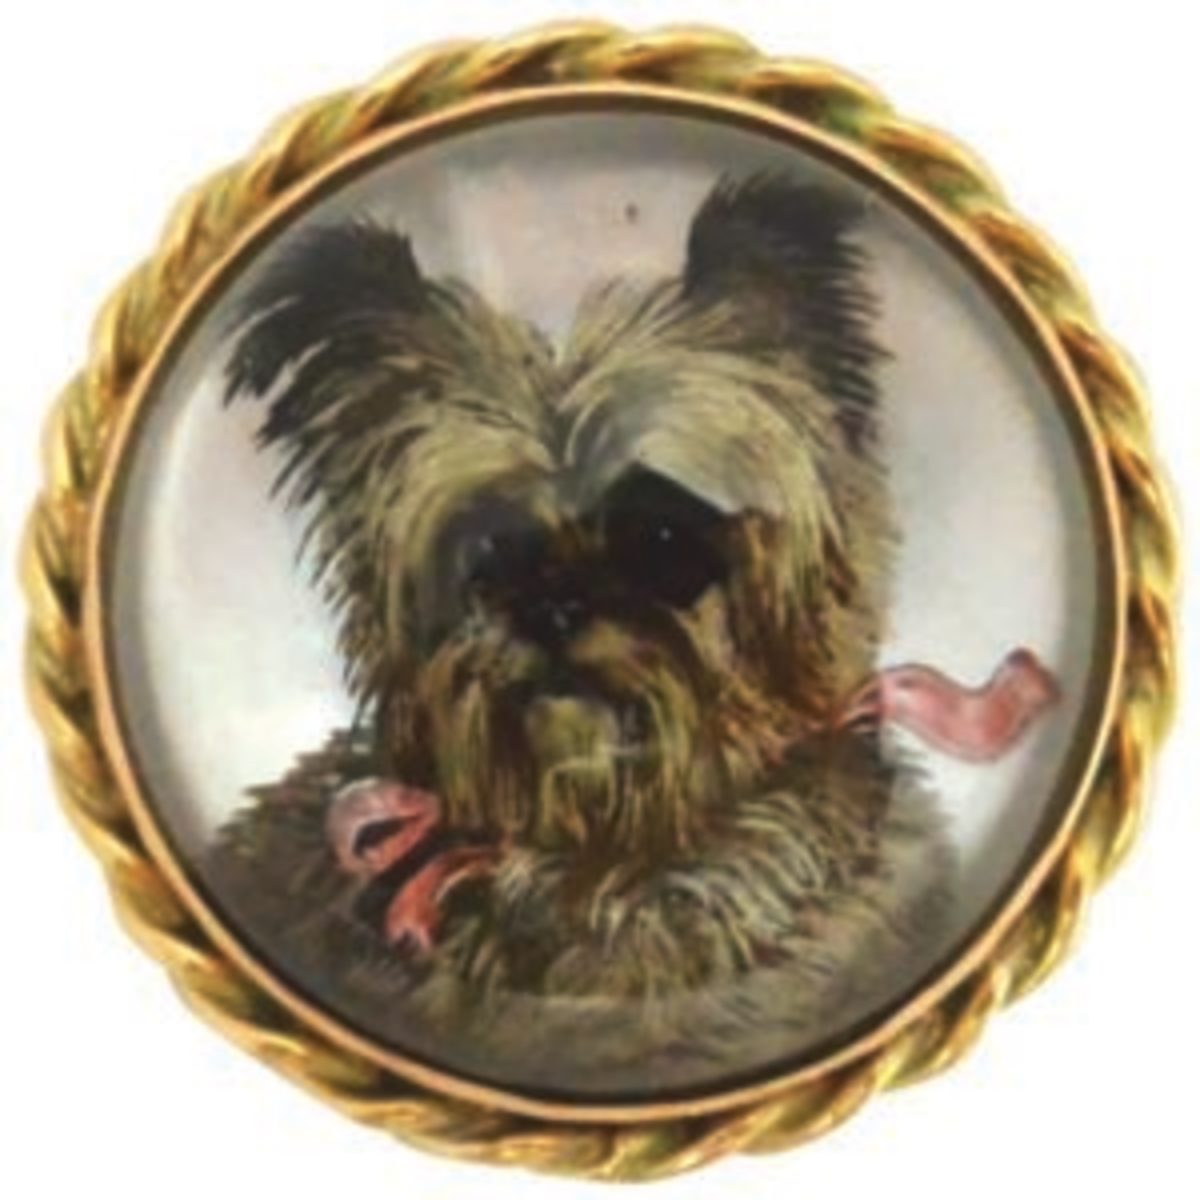 "It is hard to resist such an affectionate portrait of a furry friend. This c.1890 Essex Crystal brooch captures in three-dimensional perfection a sweet Cairn Terrier sporting a flouncy pink ribbon collar and bow. At 1-1/4"" in diameter, this hand-painted in reverse intaglio crystal is mounted in 18k gold and is elegantly framed in a braided gold border. The background is mother of pearl. Image courtesy of A Dog's Tale Collectibles"